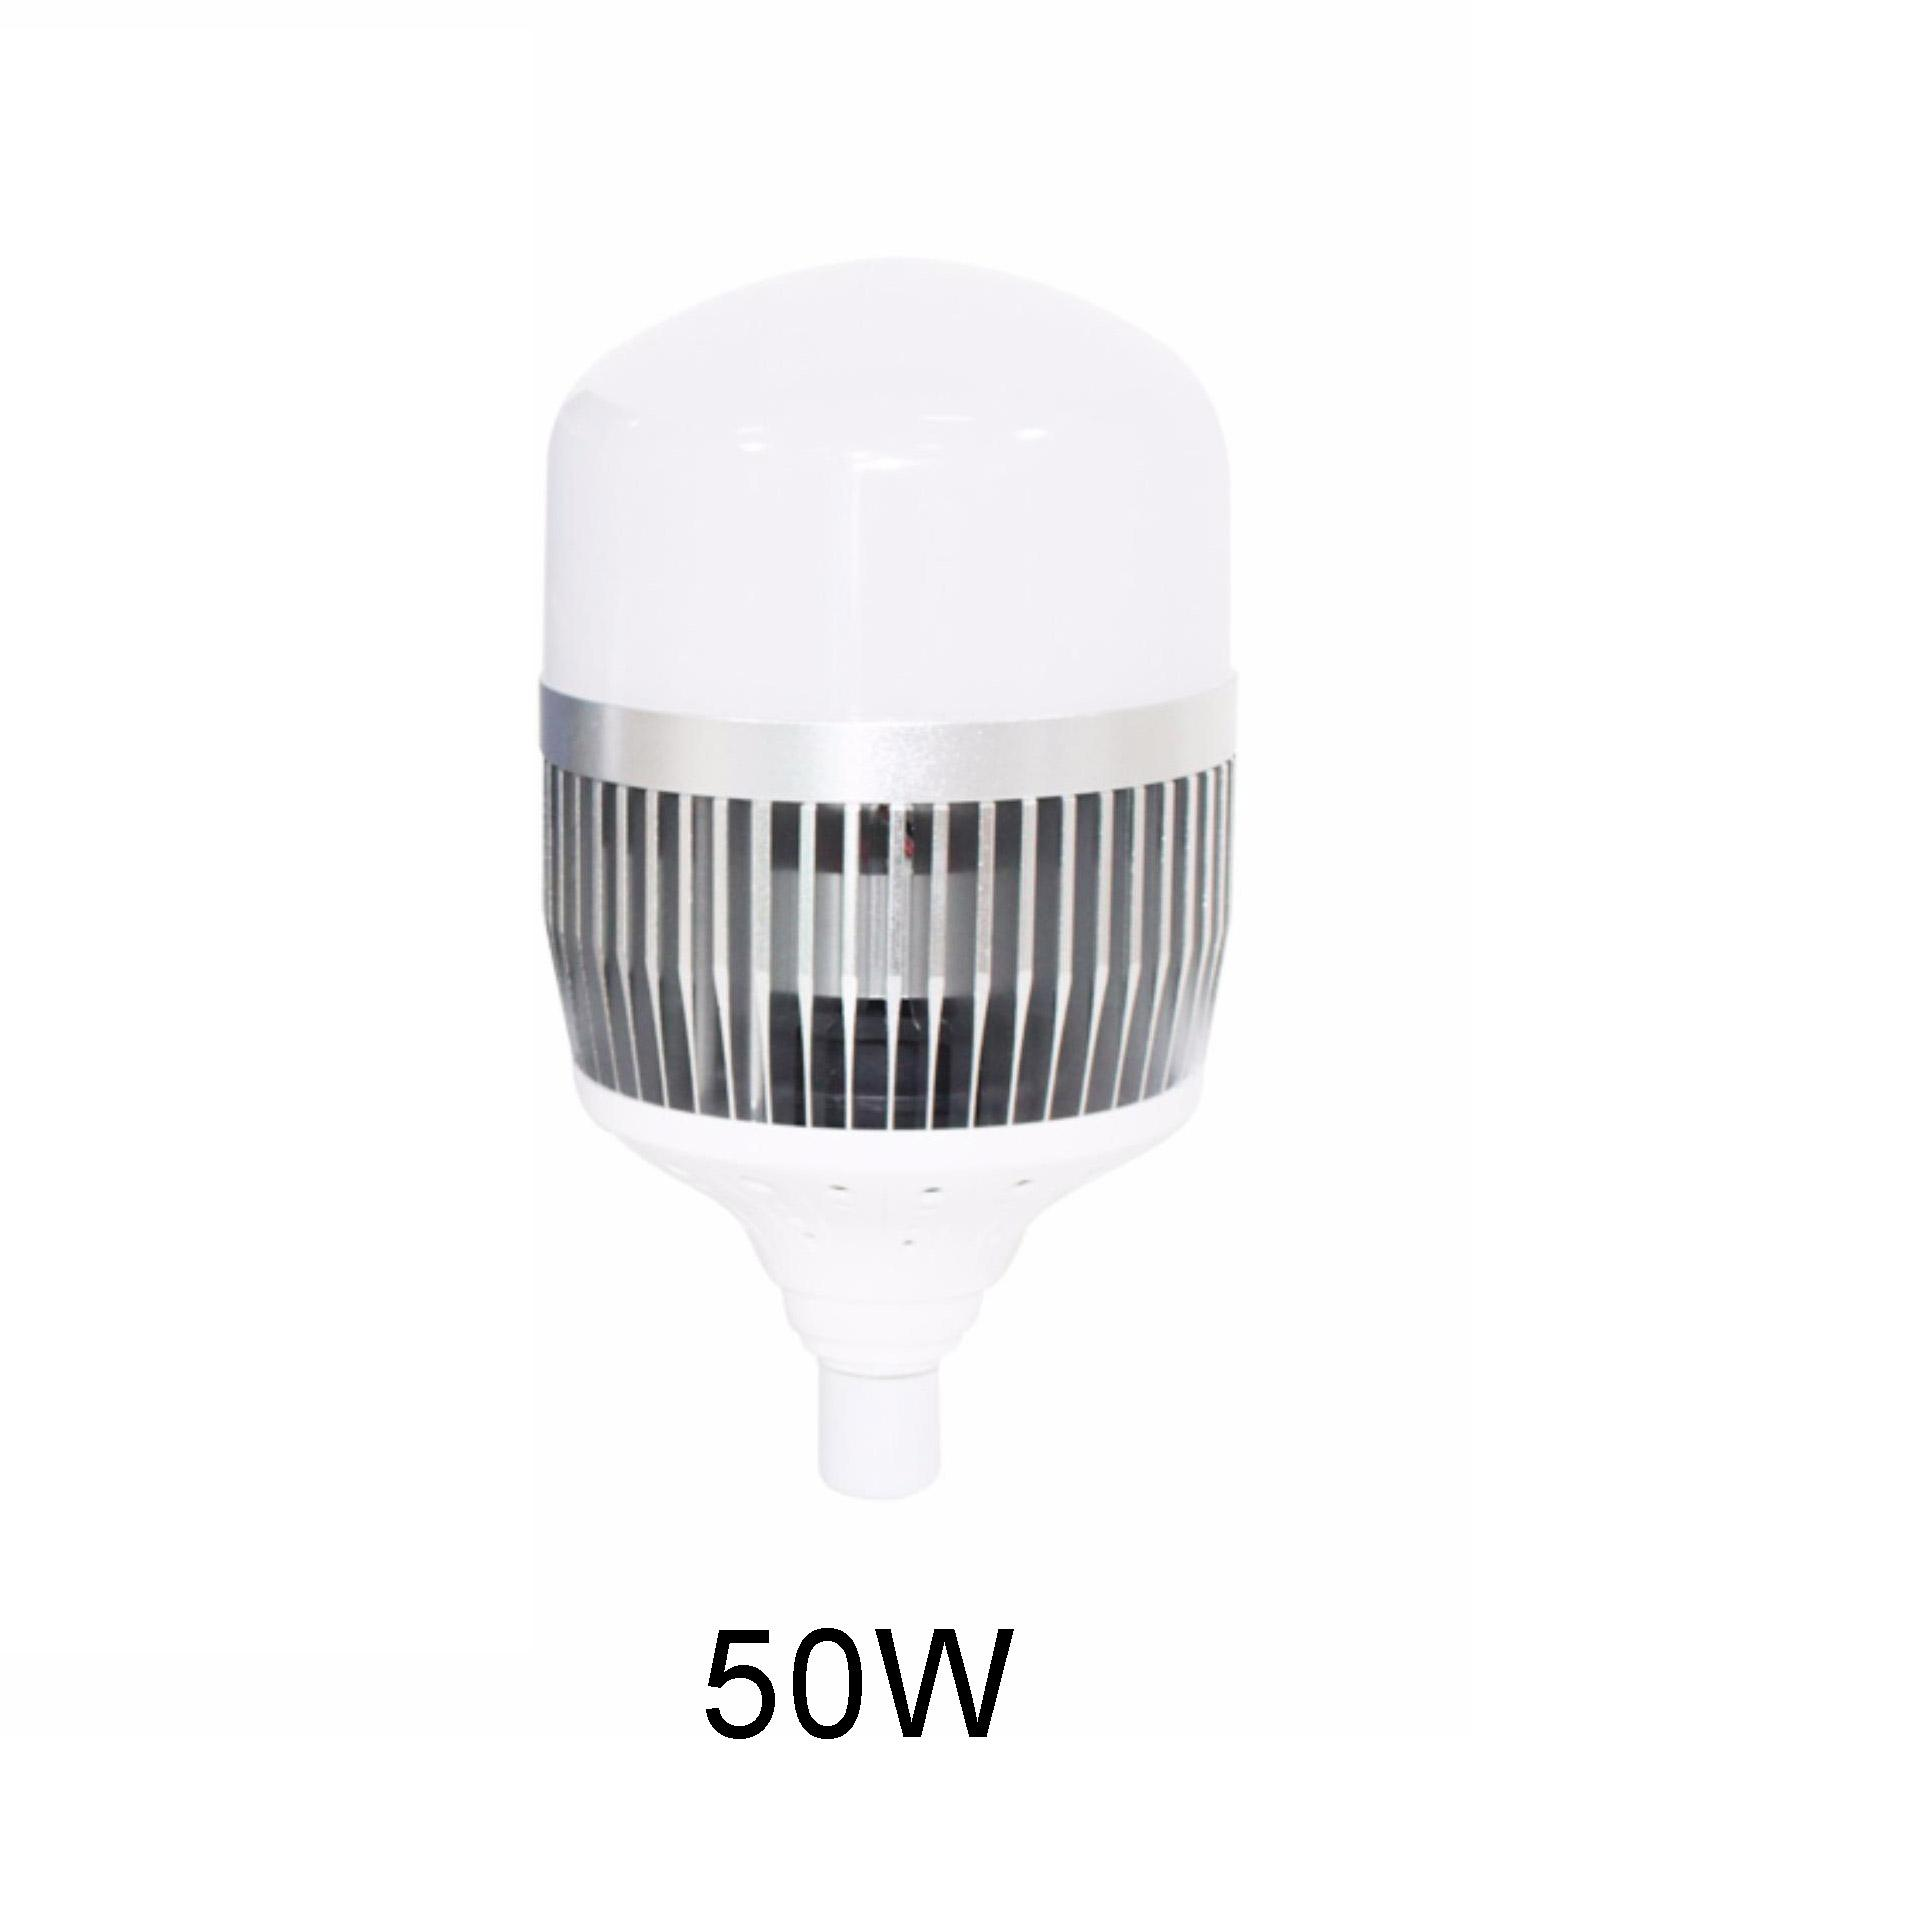 EELIC LAU-WSL Super Lamp Industri  led E27 Pilihan 50 / 100 /150 WATT besar